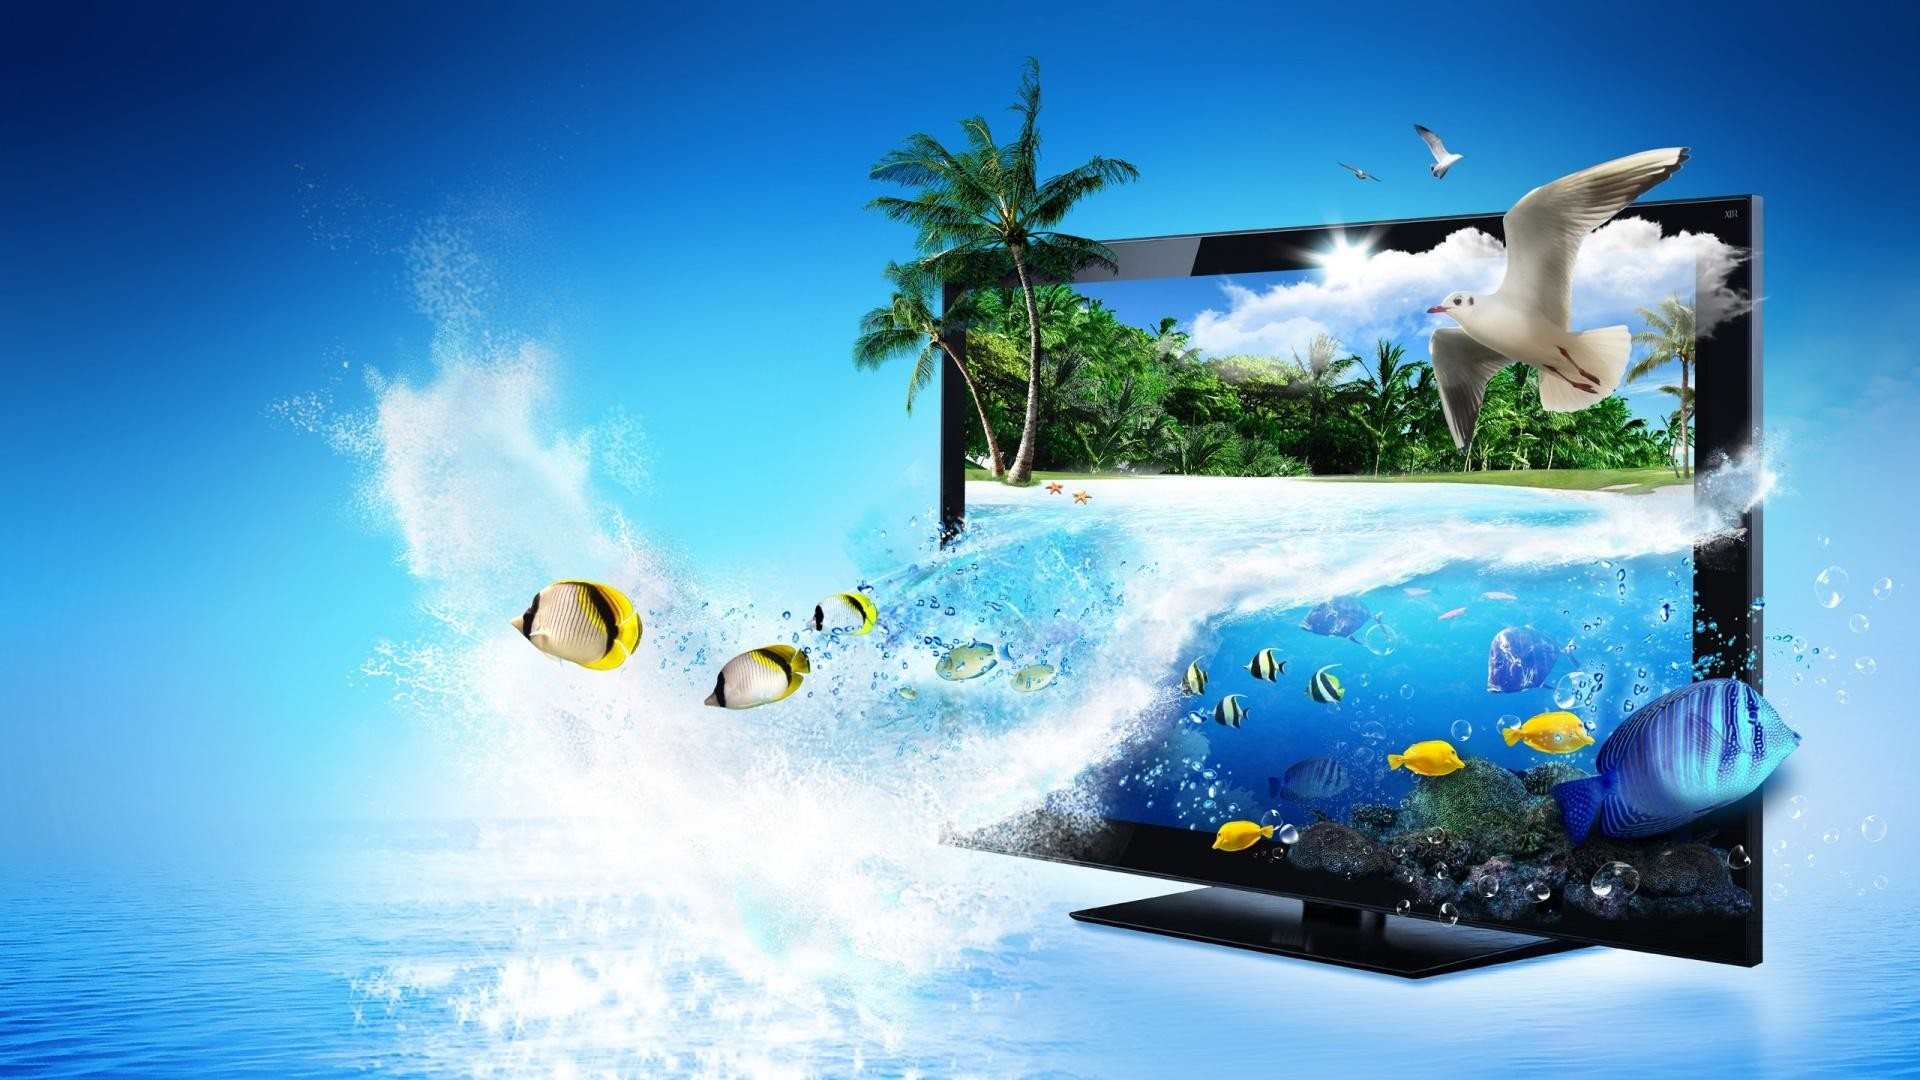 Full HD 3D Wallpapers 1920X1080 79 Background Pictures